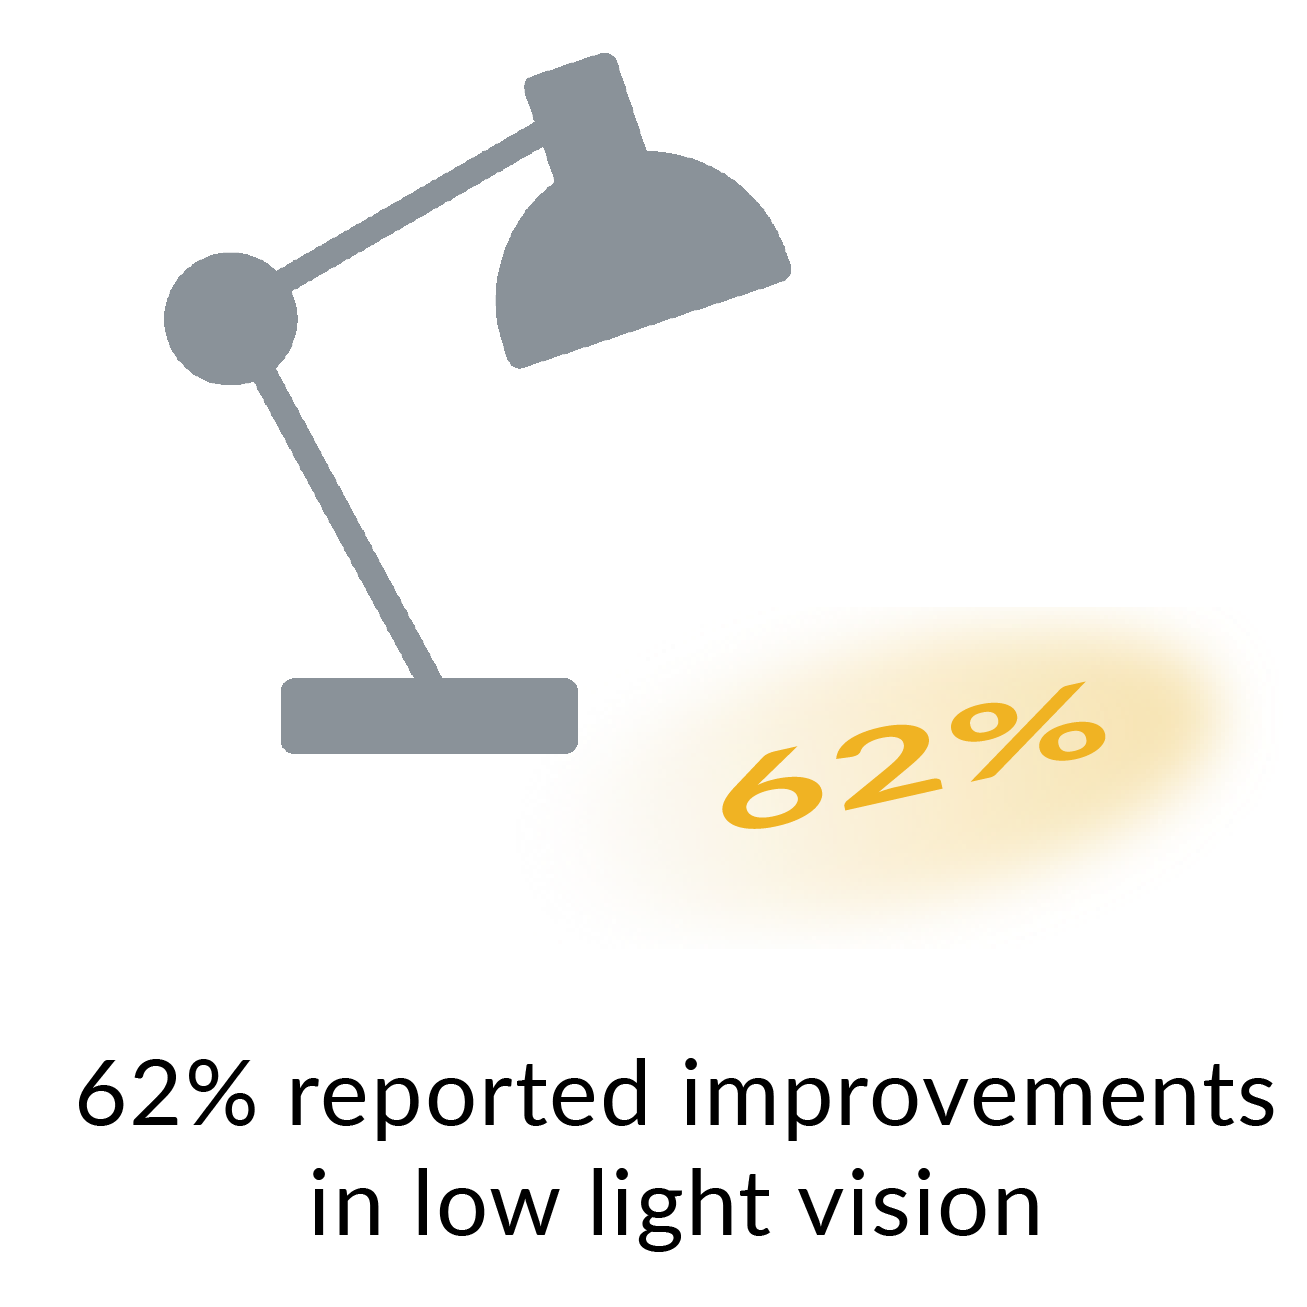 62% reported improvements in low light vision